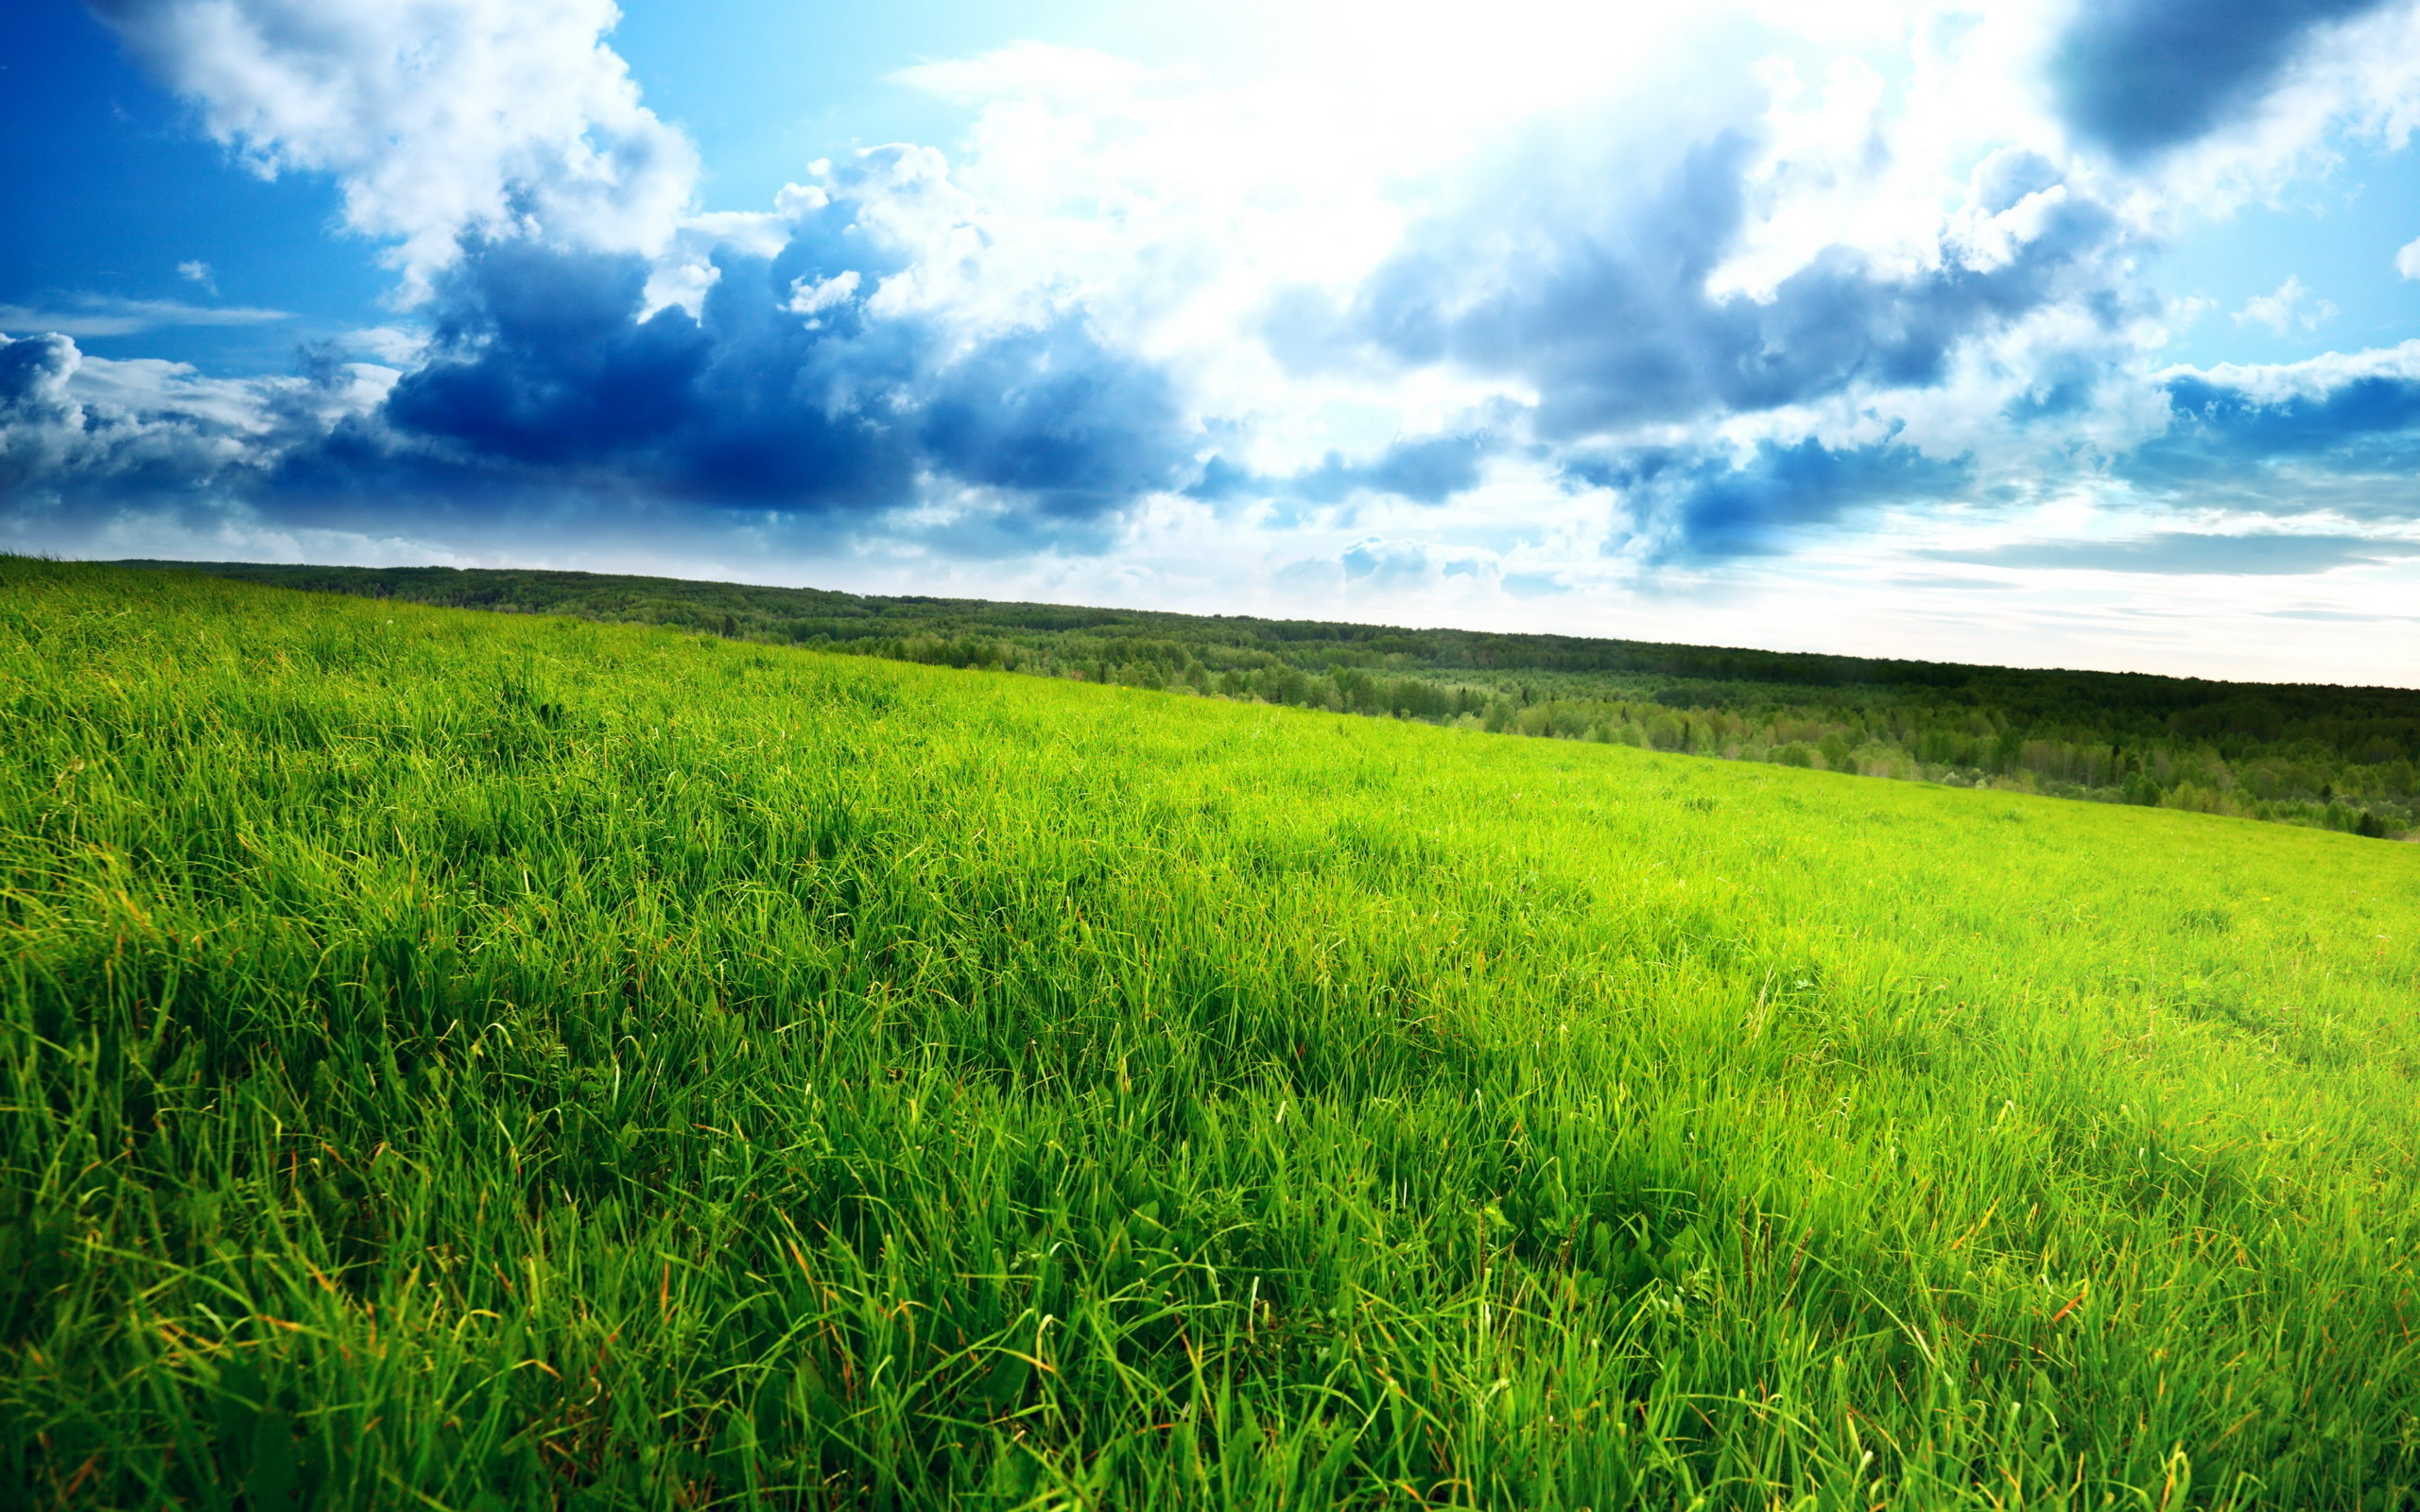 Islamic Quotes Hd Wallpapers Stunning Green Field 4094 Hdwpro